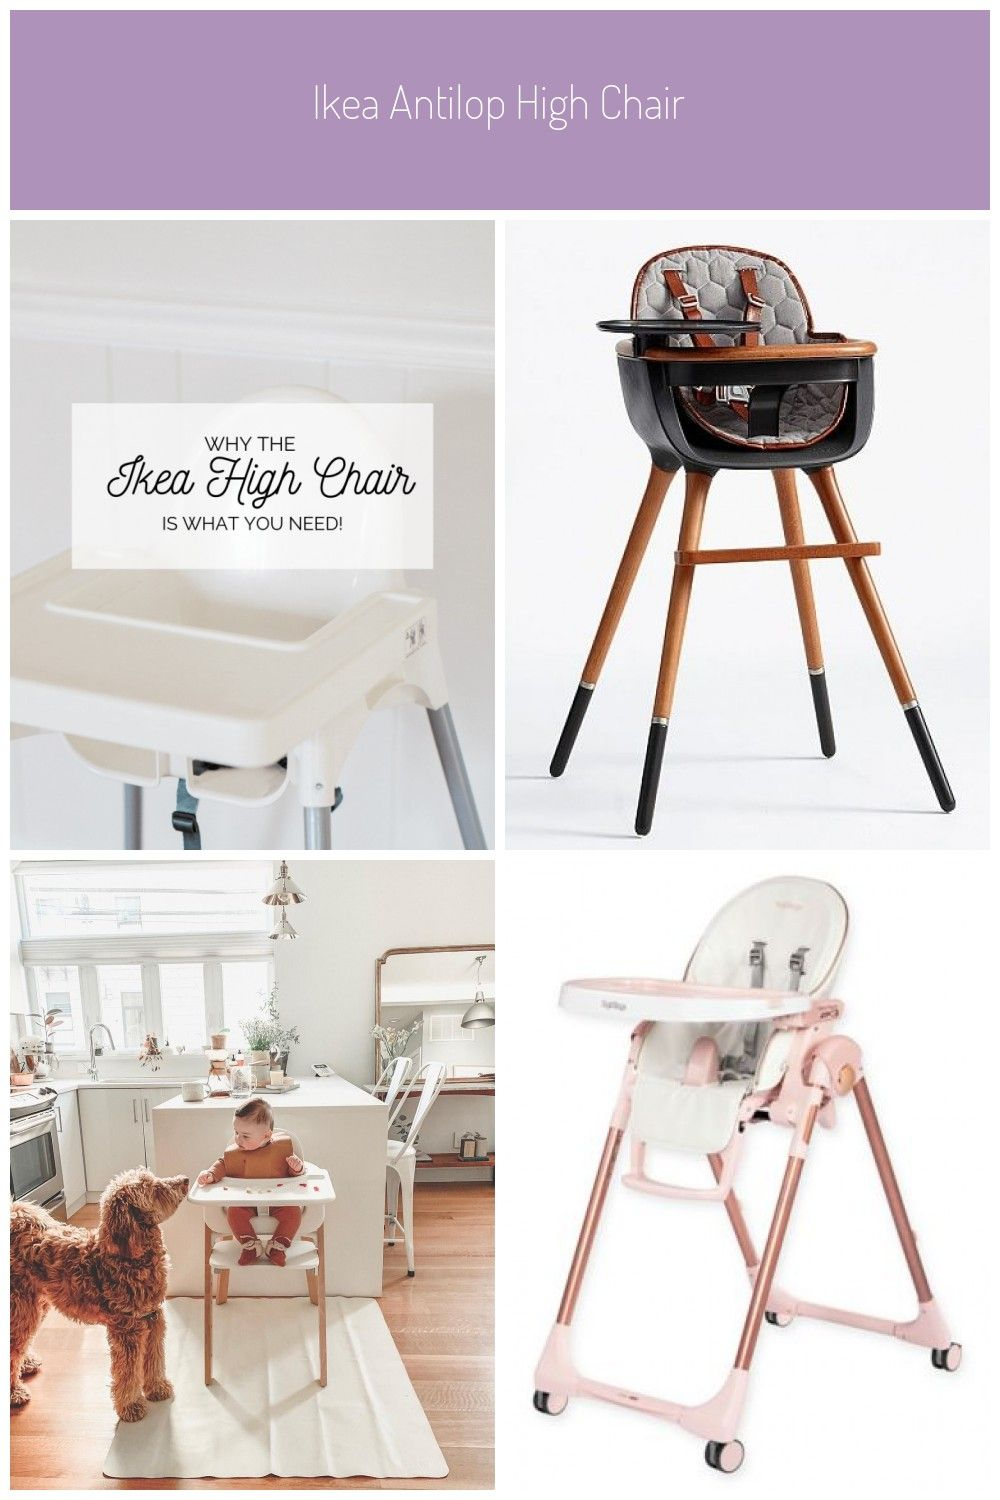 A review of the IKEA Antilop High Chair. The top 5 reasons